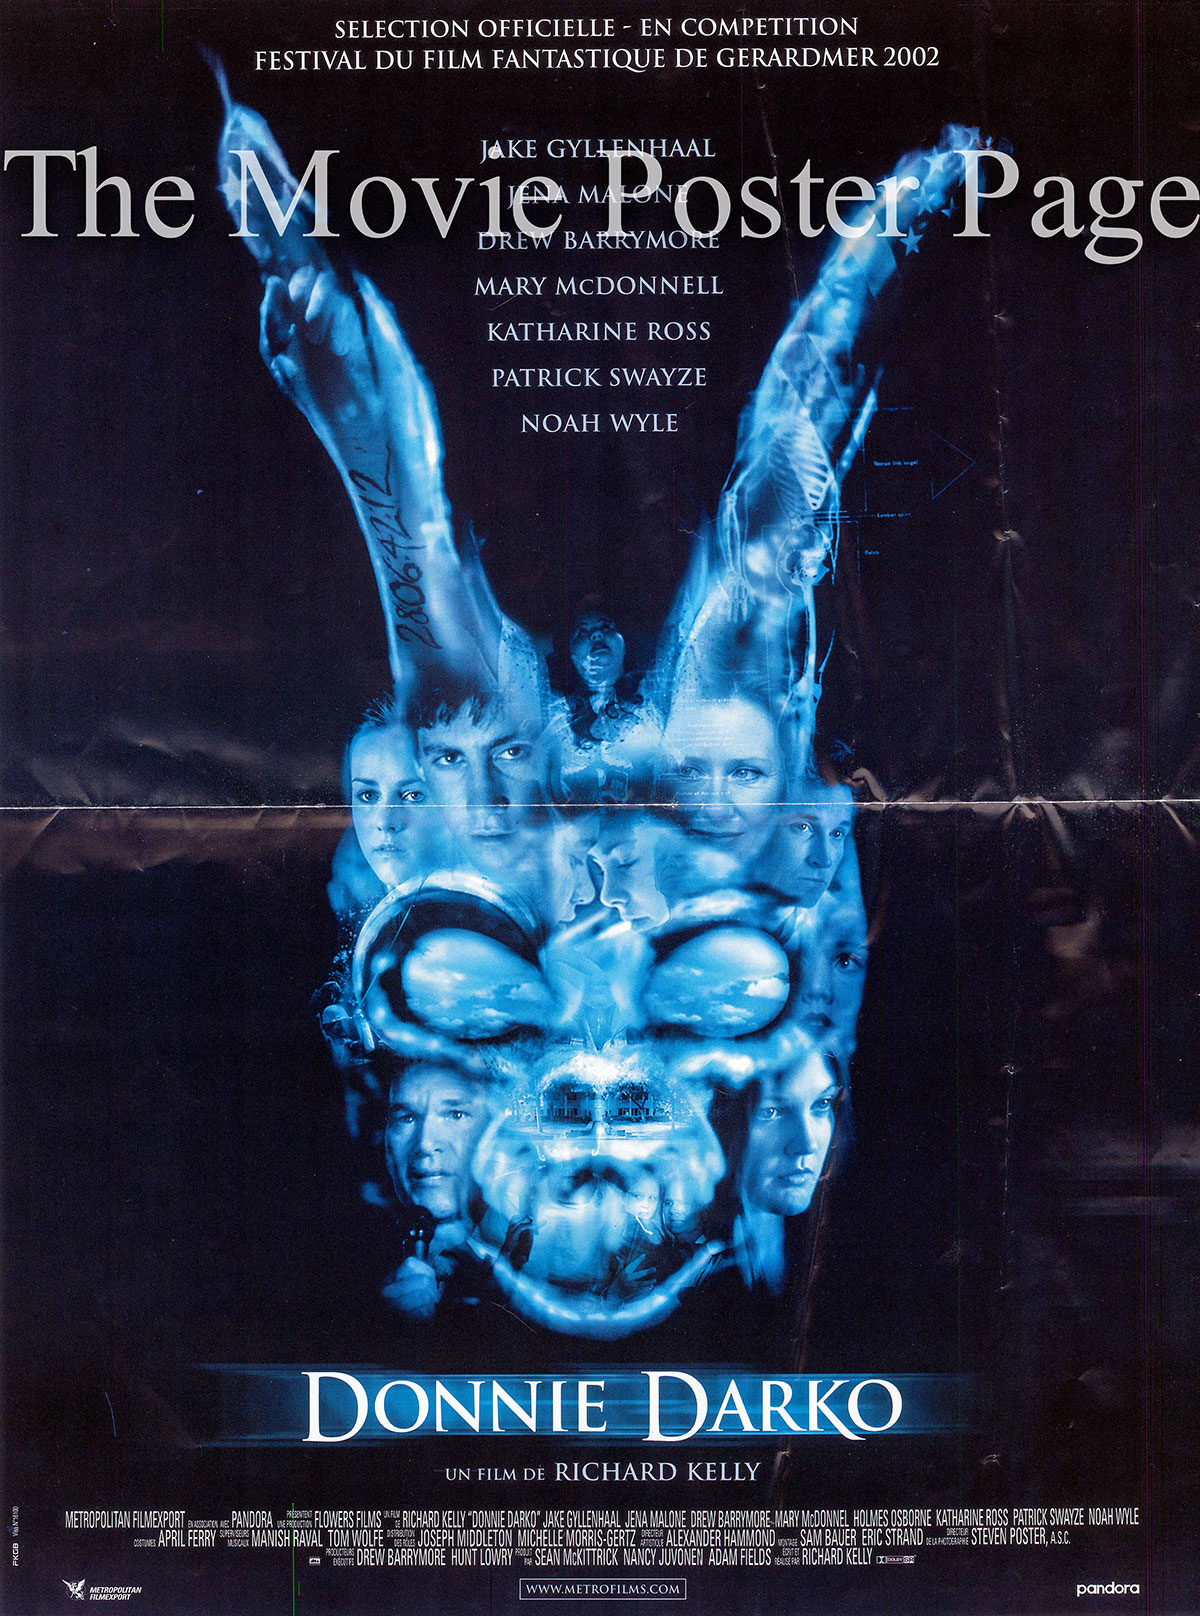 Pictured is a 15x21 French poster for the 2001 Richard Kelly film Donnie Darko starring Jake Gyllenhaal as Donnie Darko.